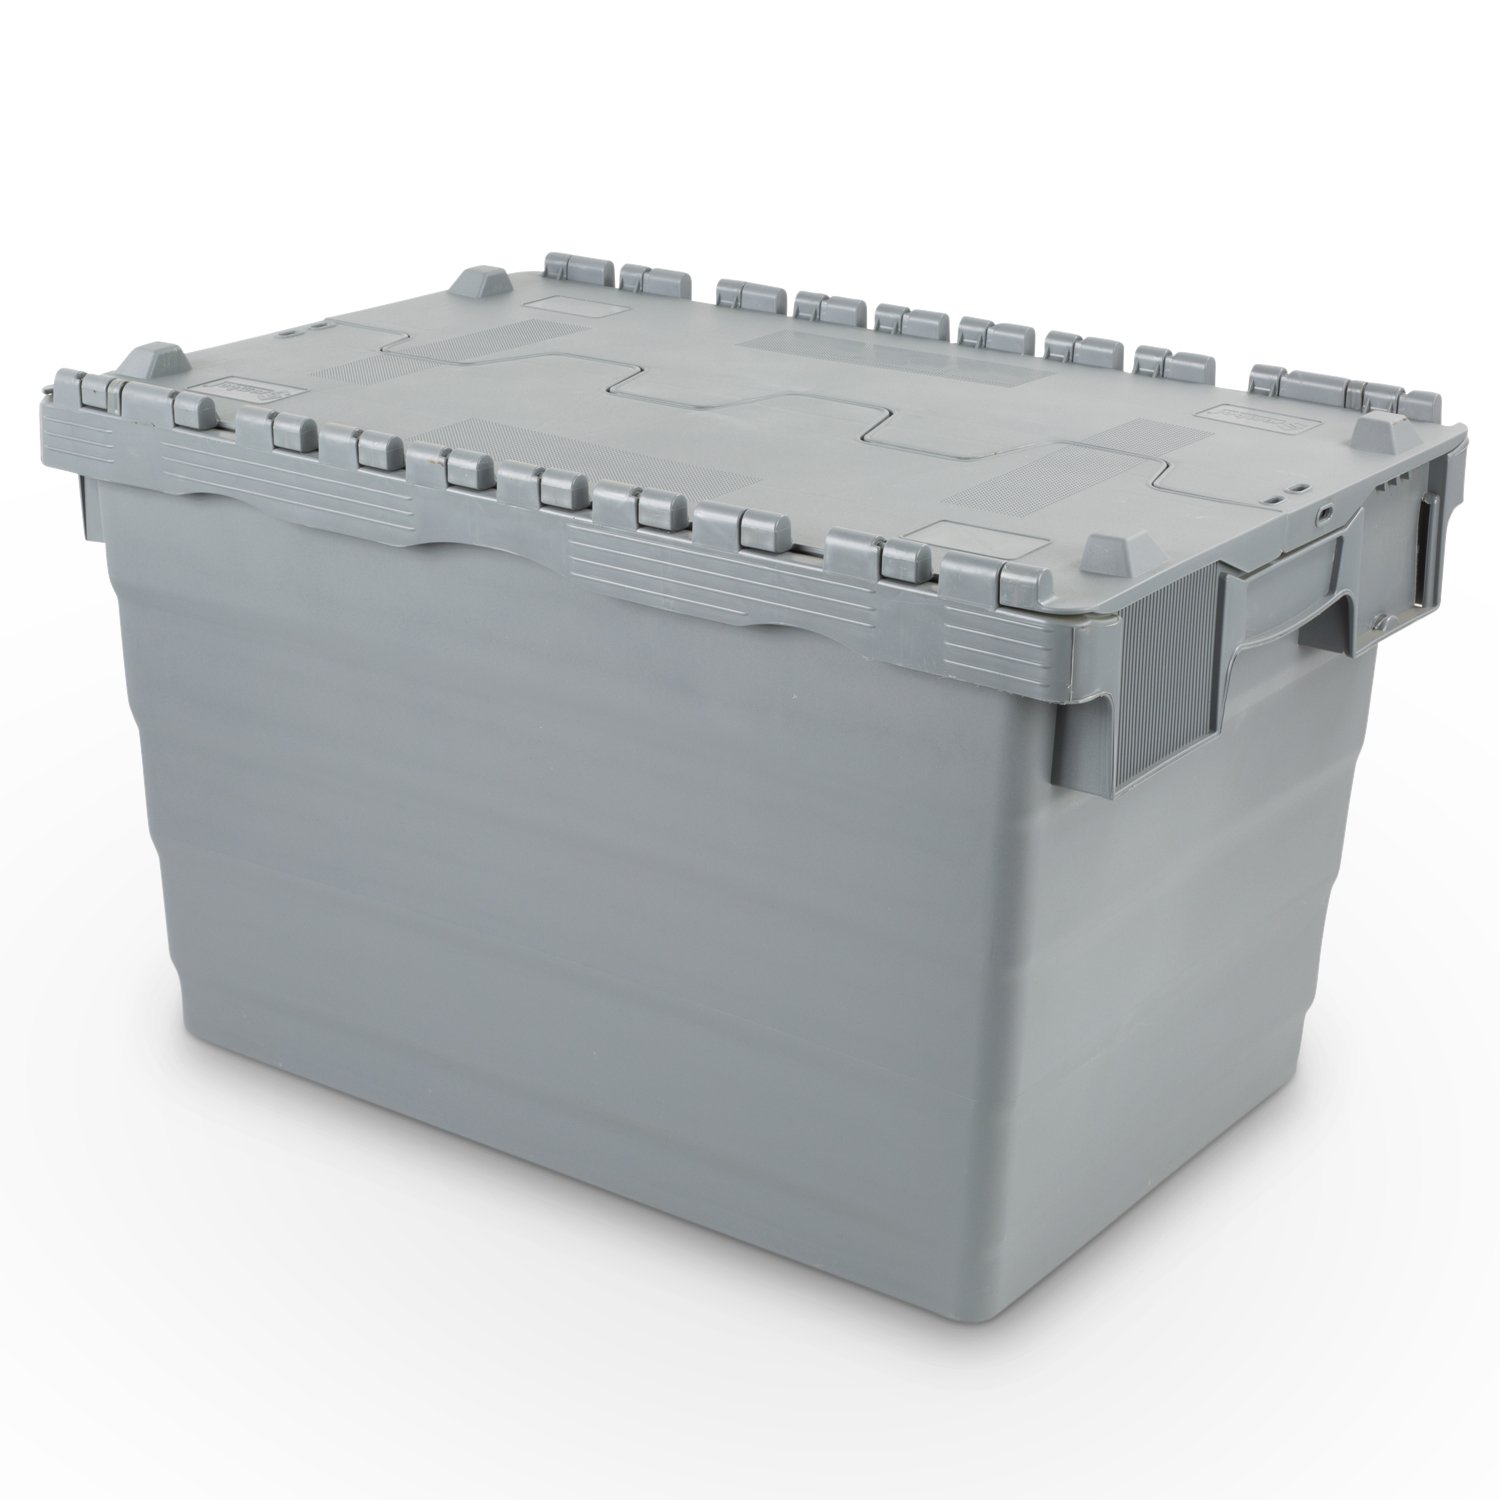 Hans Schourup Reusable Container with Hinged Lid, 22601028  68  Litre 600  x 400  x 365  mm 22601028 68 Litre 600 x 400 x 365 mm